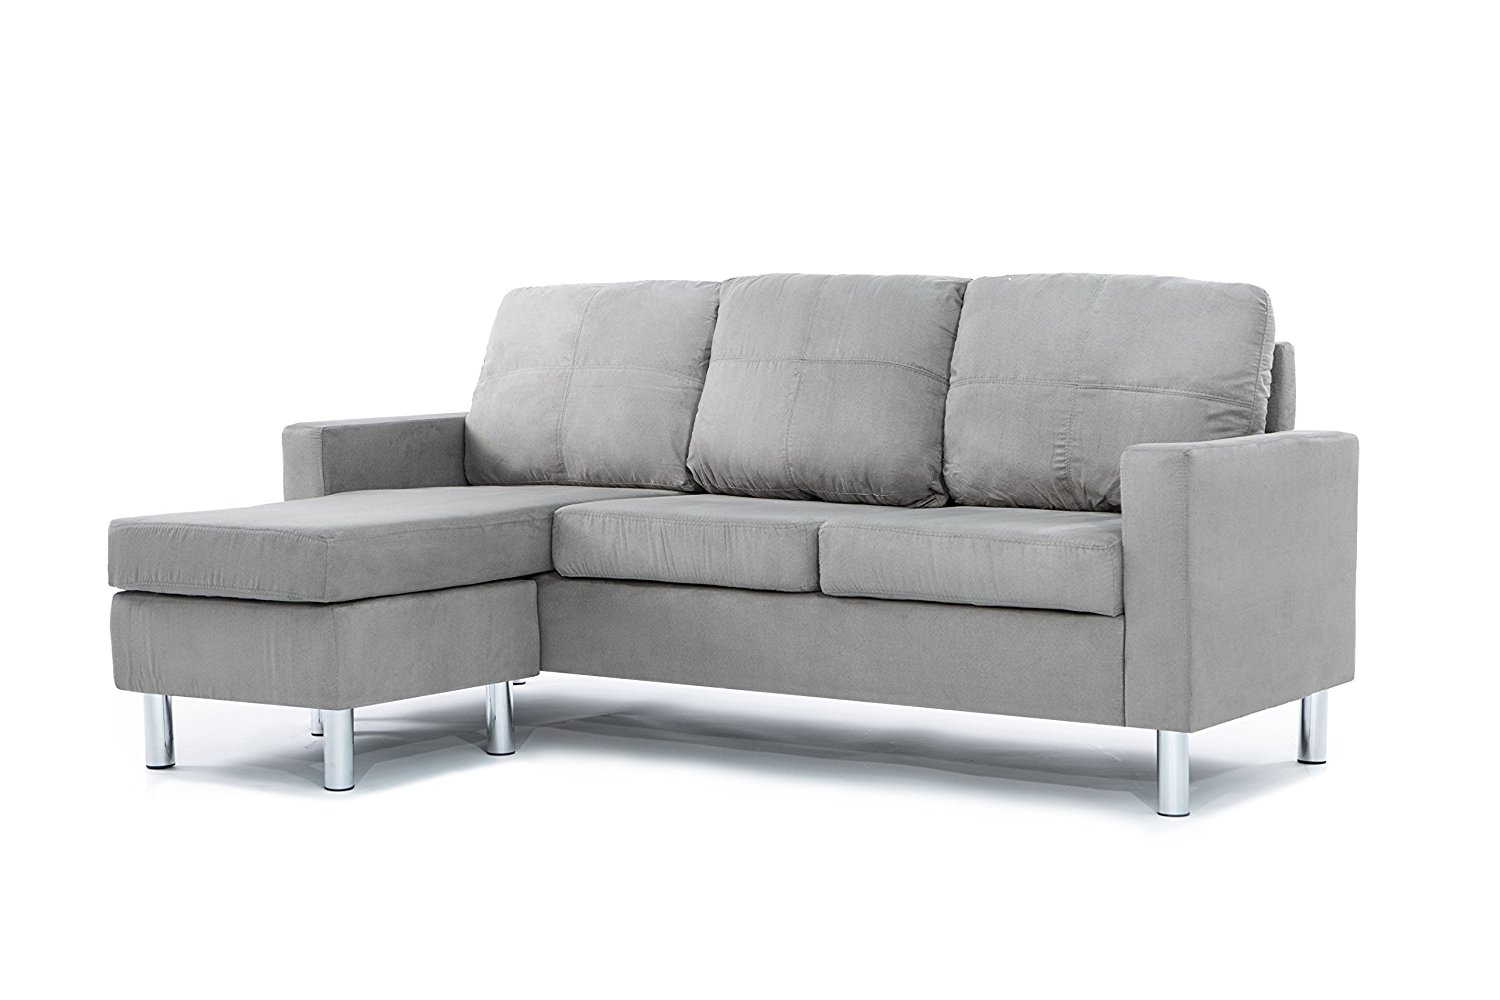 Stylish Grey Sofa and Sectional Options The Creek Line House